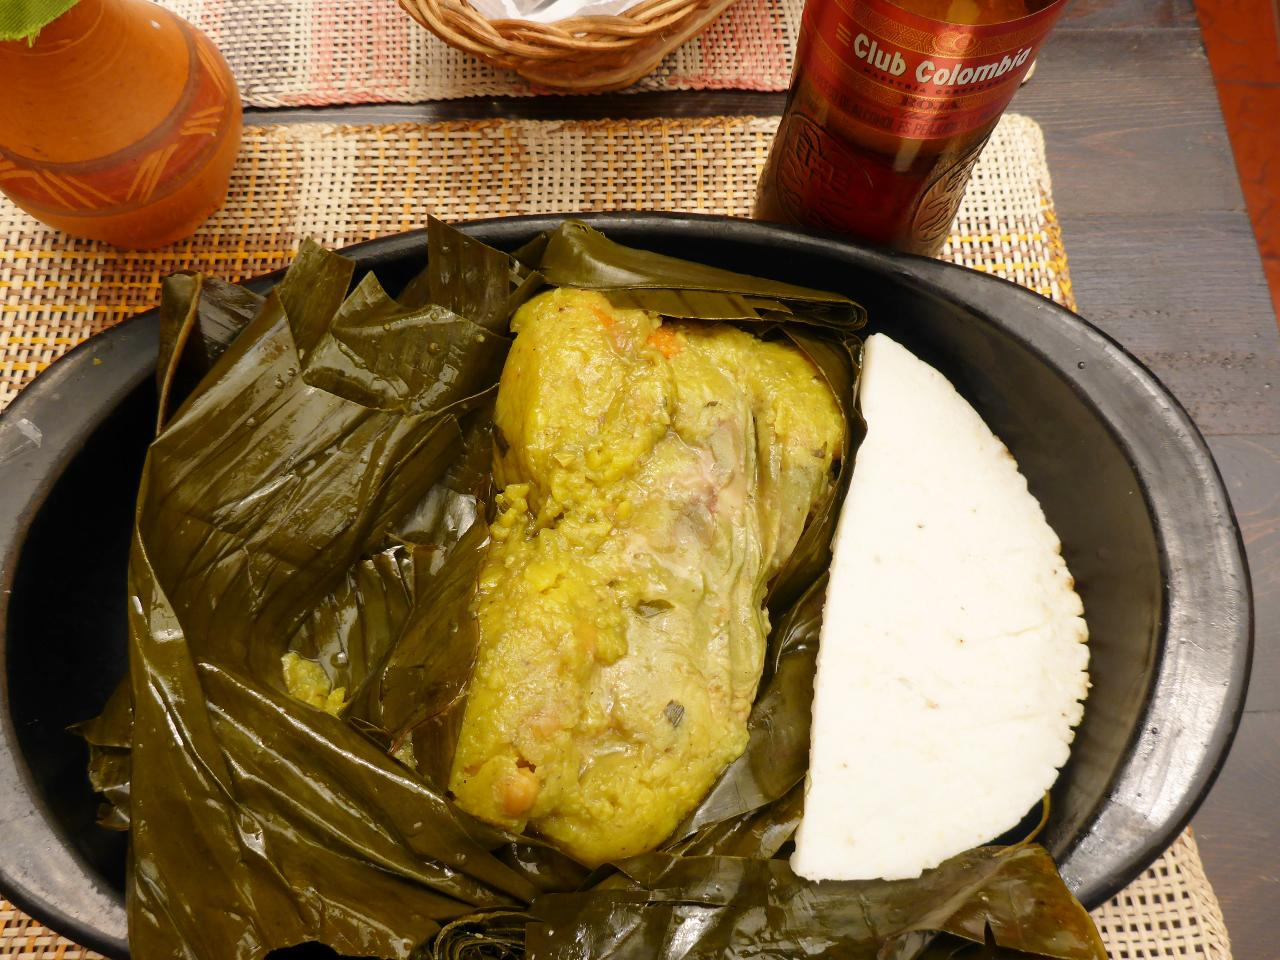 A delicious Colombian tamale.